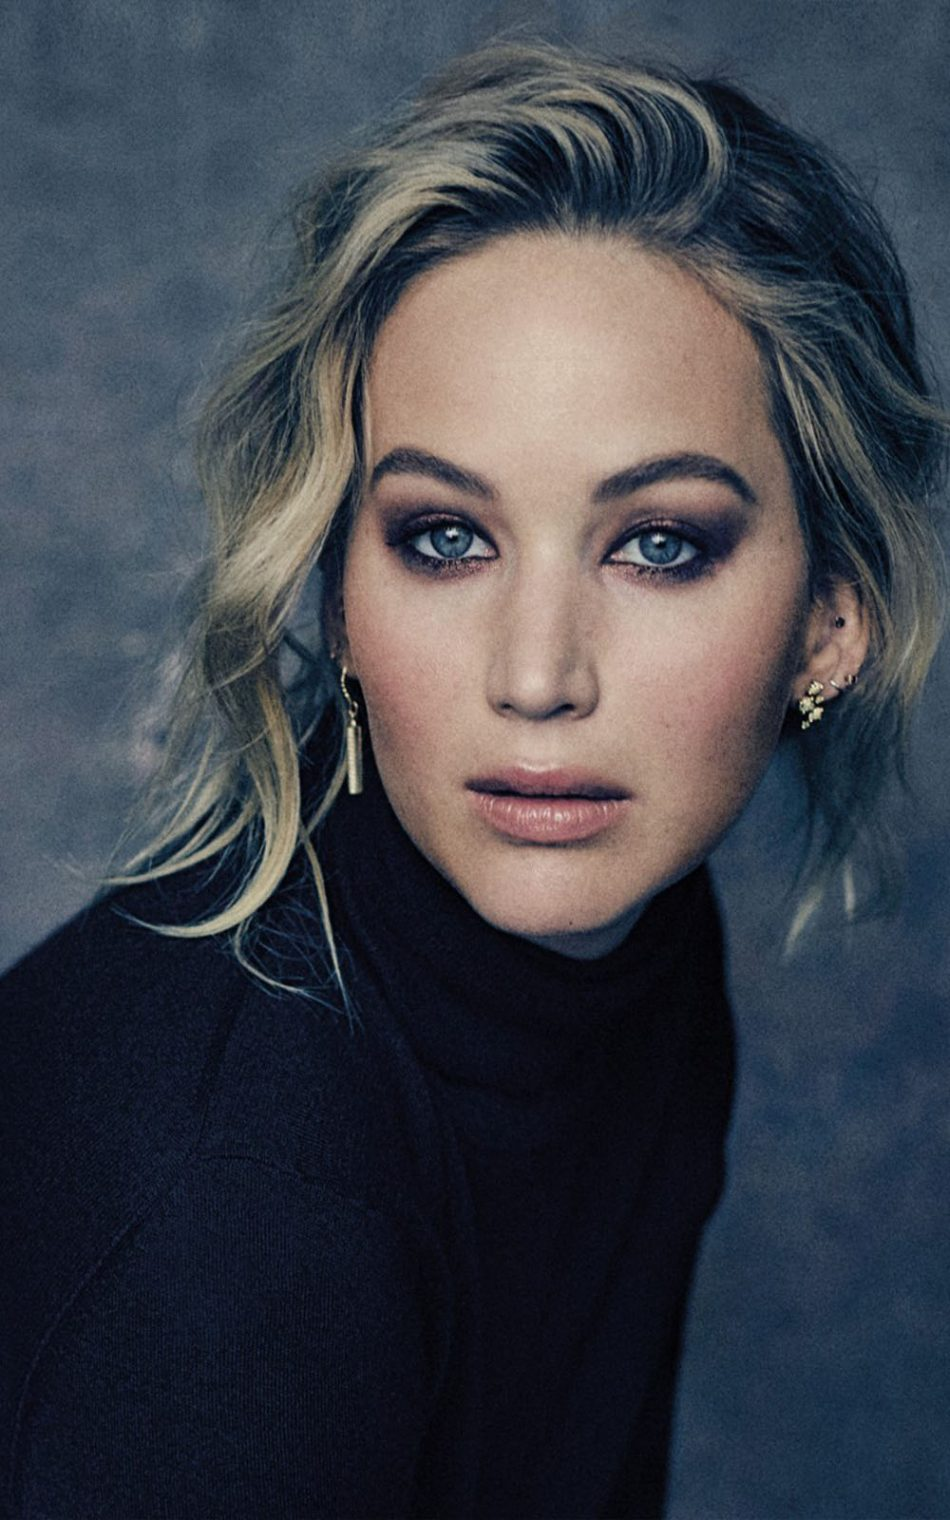 Download Jennifer Lawrence The Hollywood Reporter Photoshoot Free Pure 4k Ultra Hd Mobile The Hollywood Reporter Jennifer Lawrence Jennifer Lawrence Boyfriend